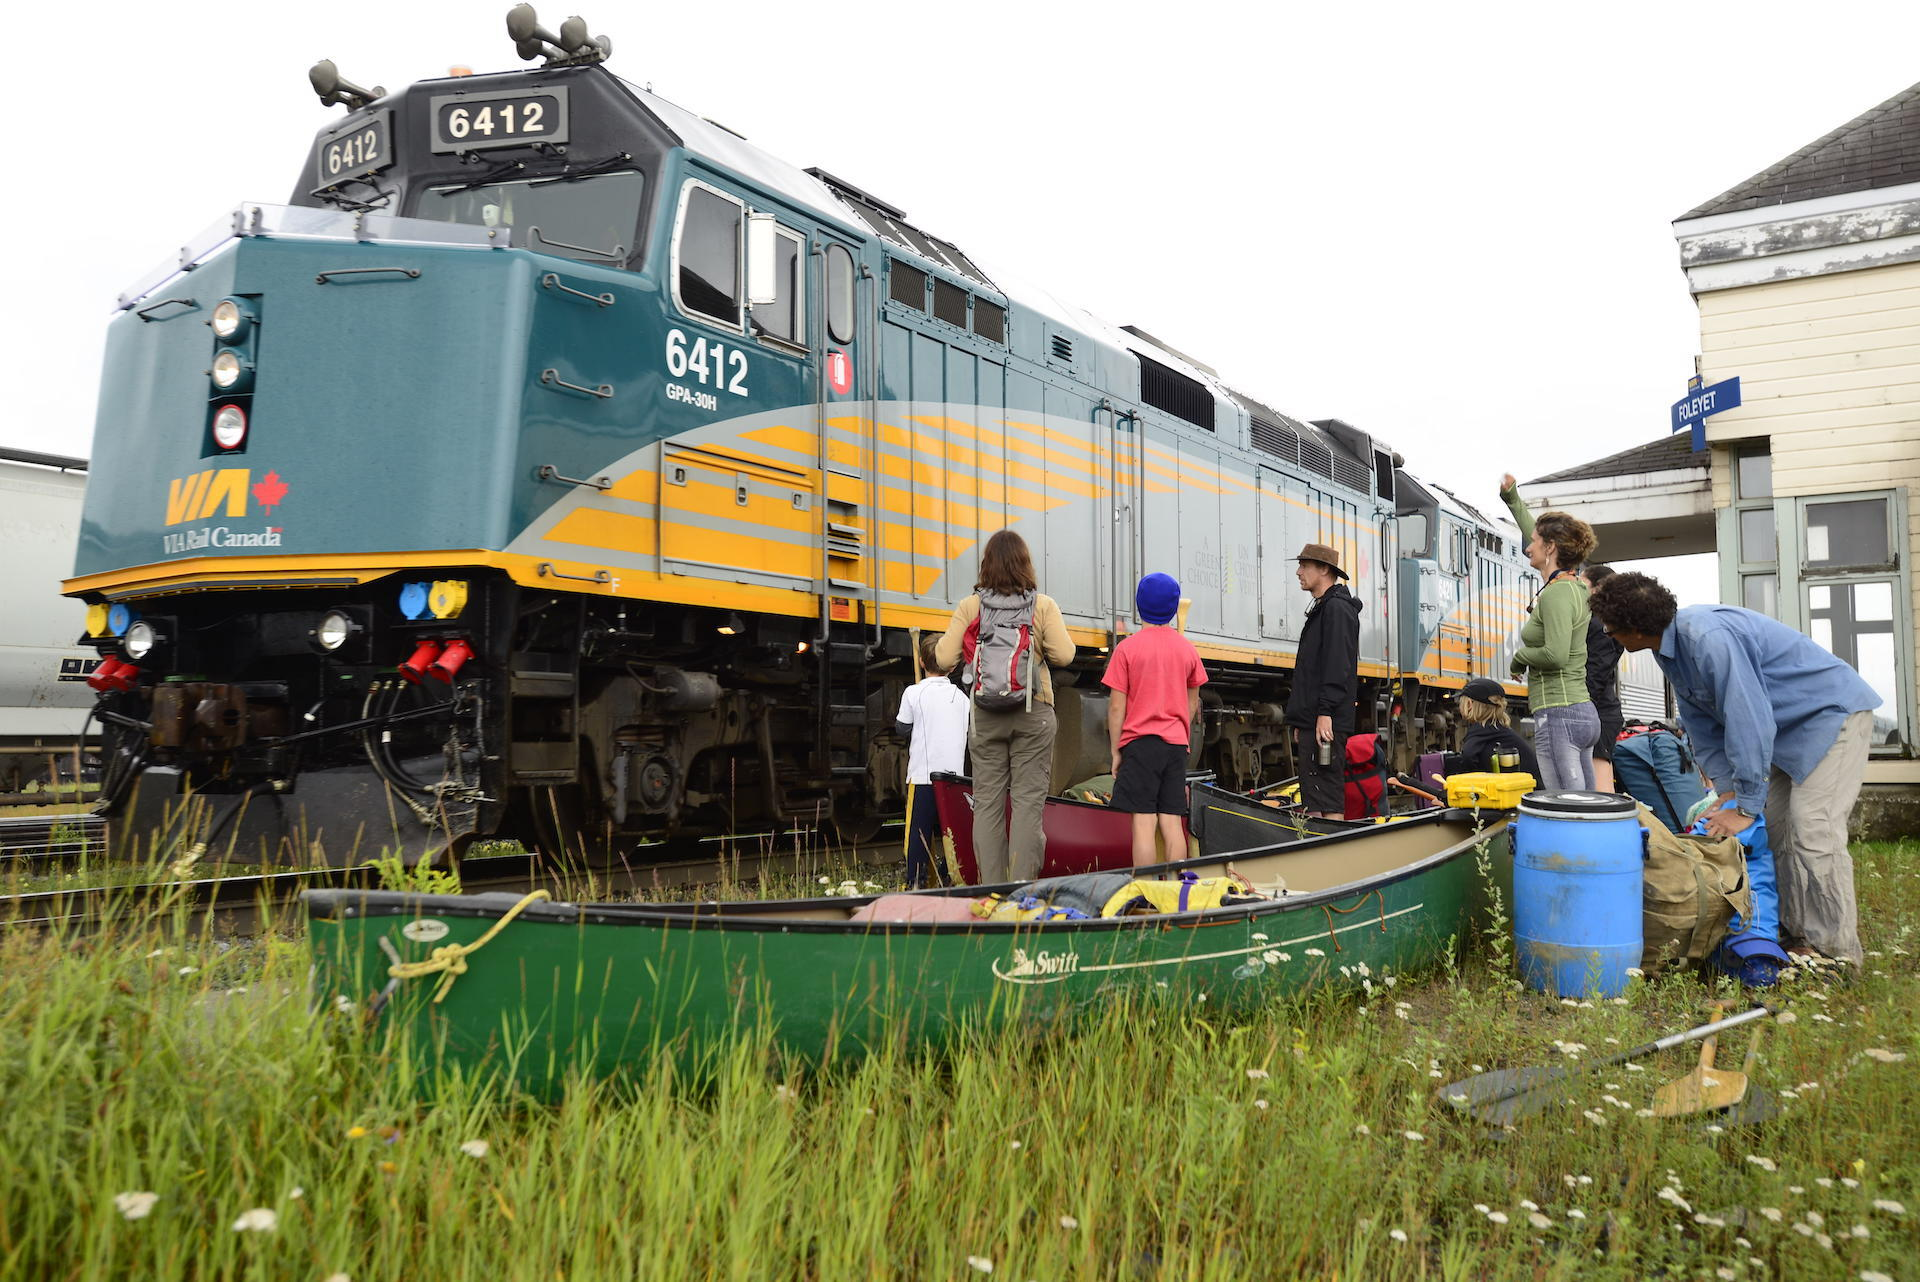 Take A Train-In Canoe Adventure To Wabakimi Provincial Park